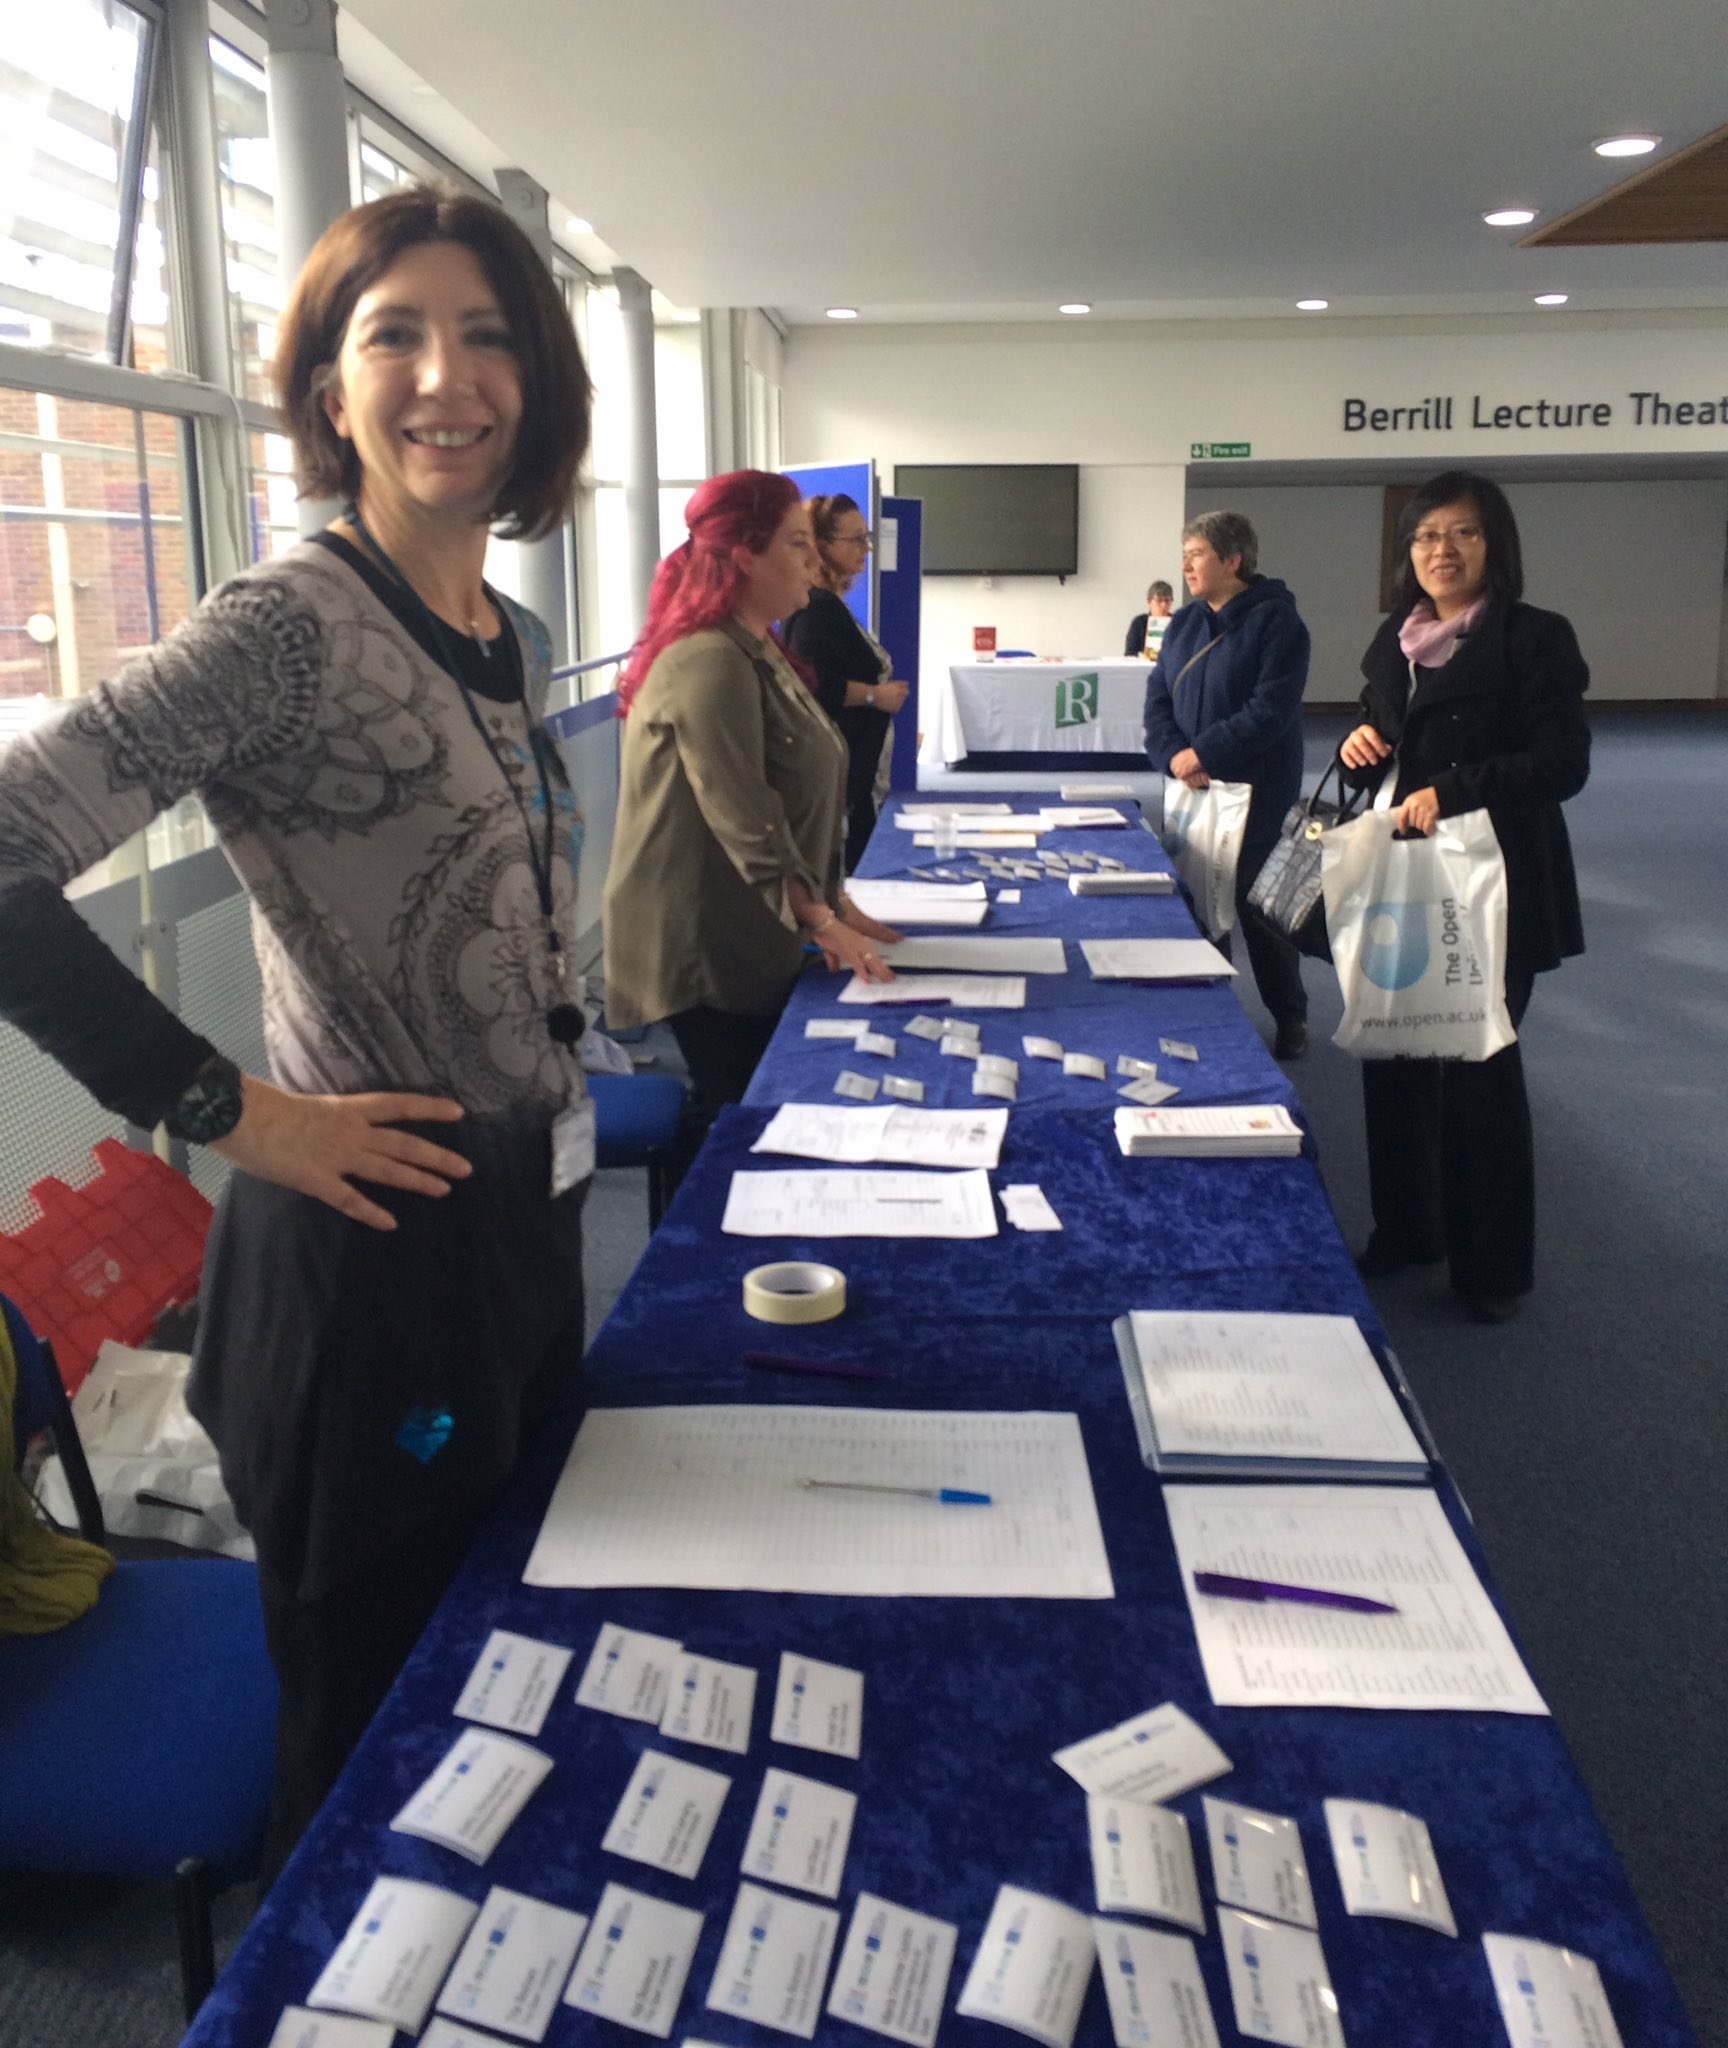 Conference registration at Berrill Lecture Theatre landing area #IC_MOVEME @MoveMe_eu @OpenUniversity https://t.co/XUfbMUCacw